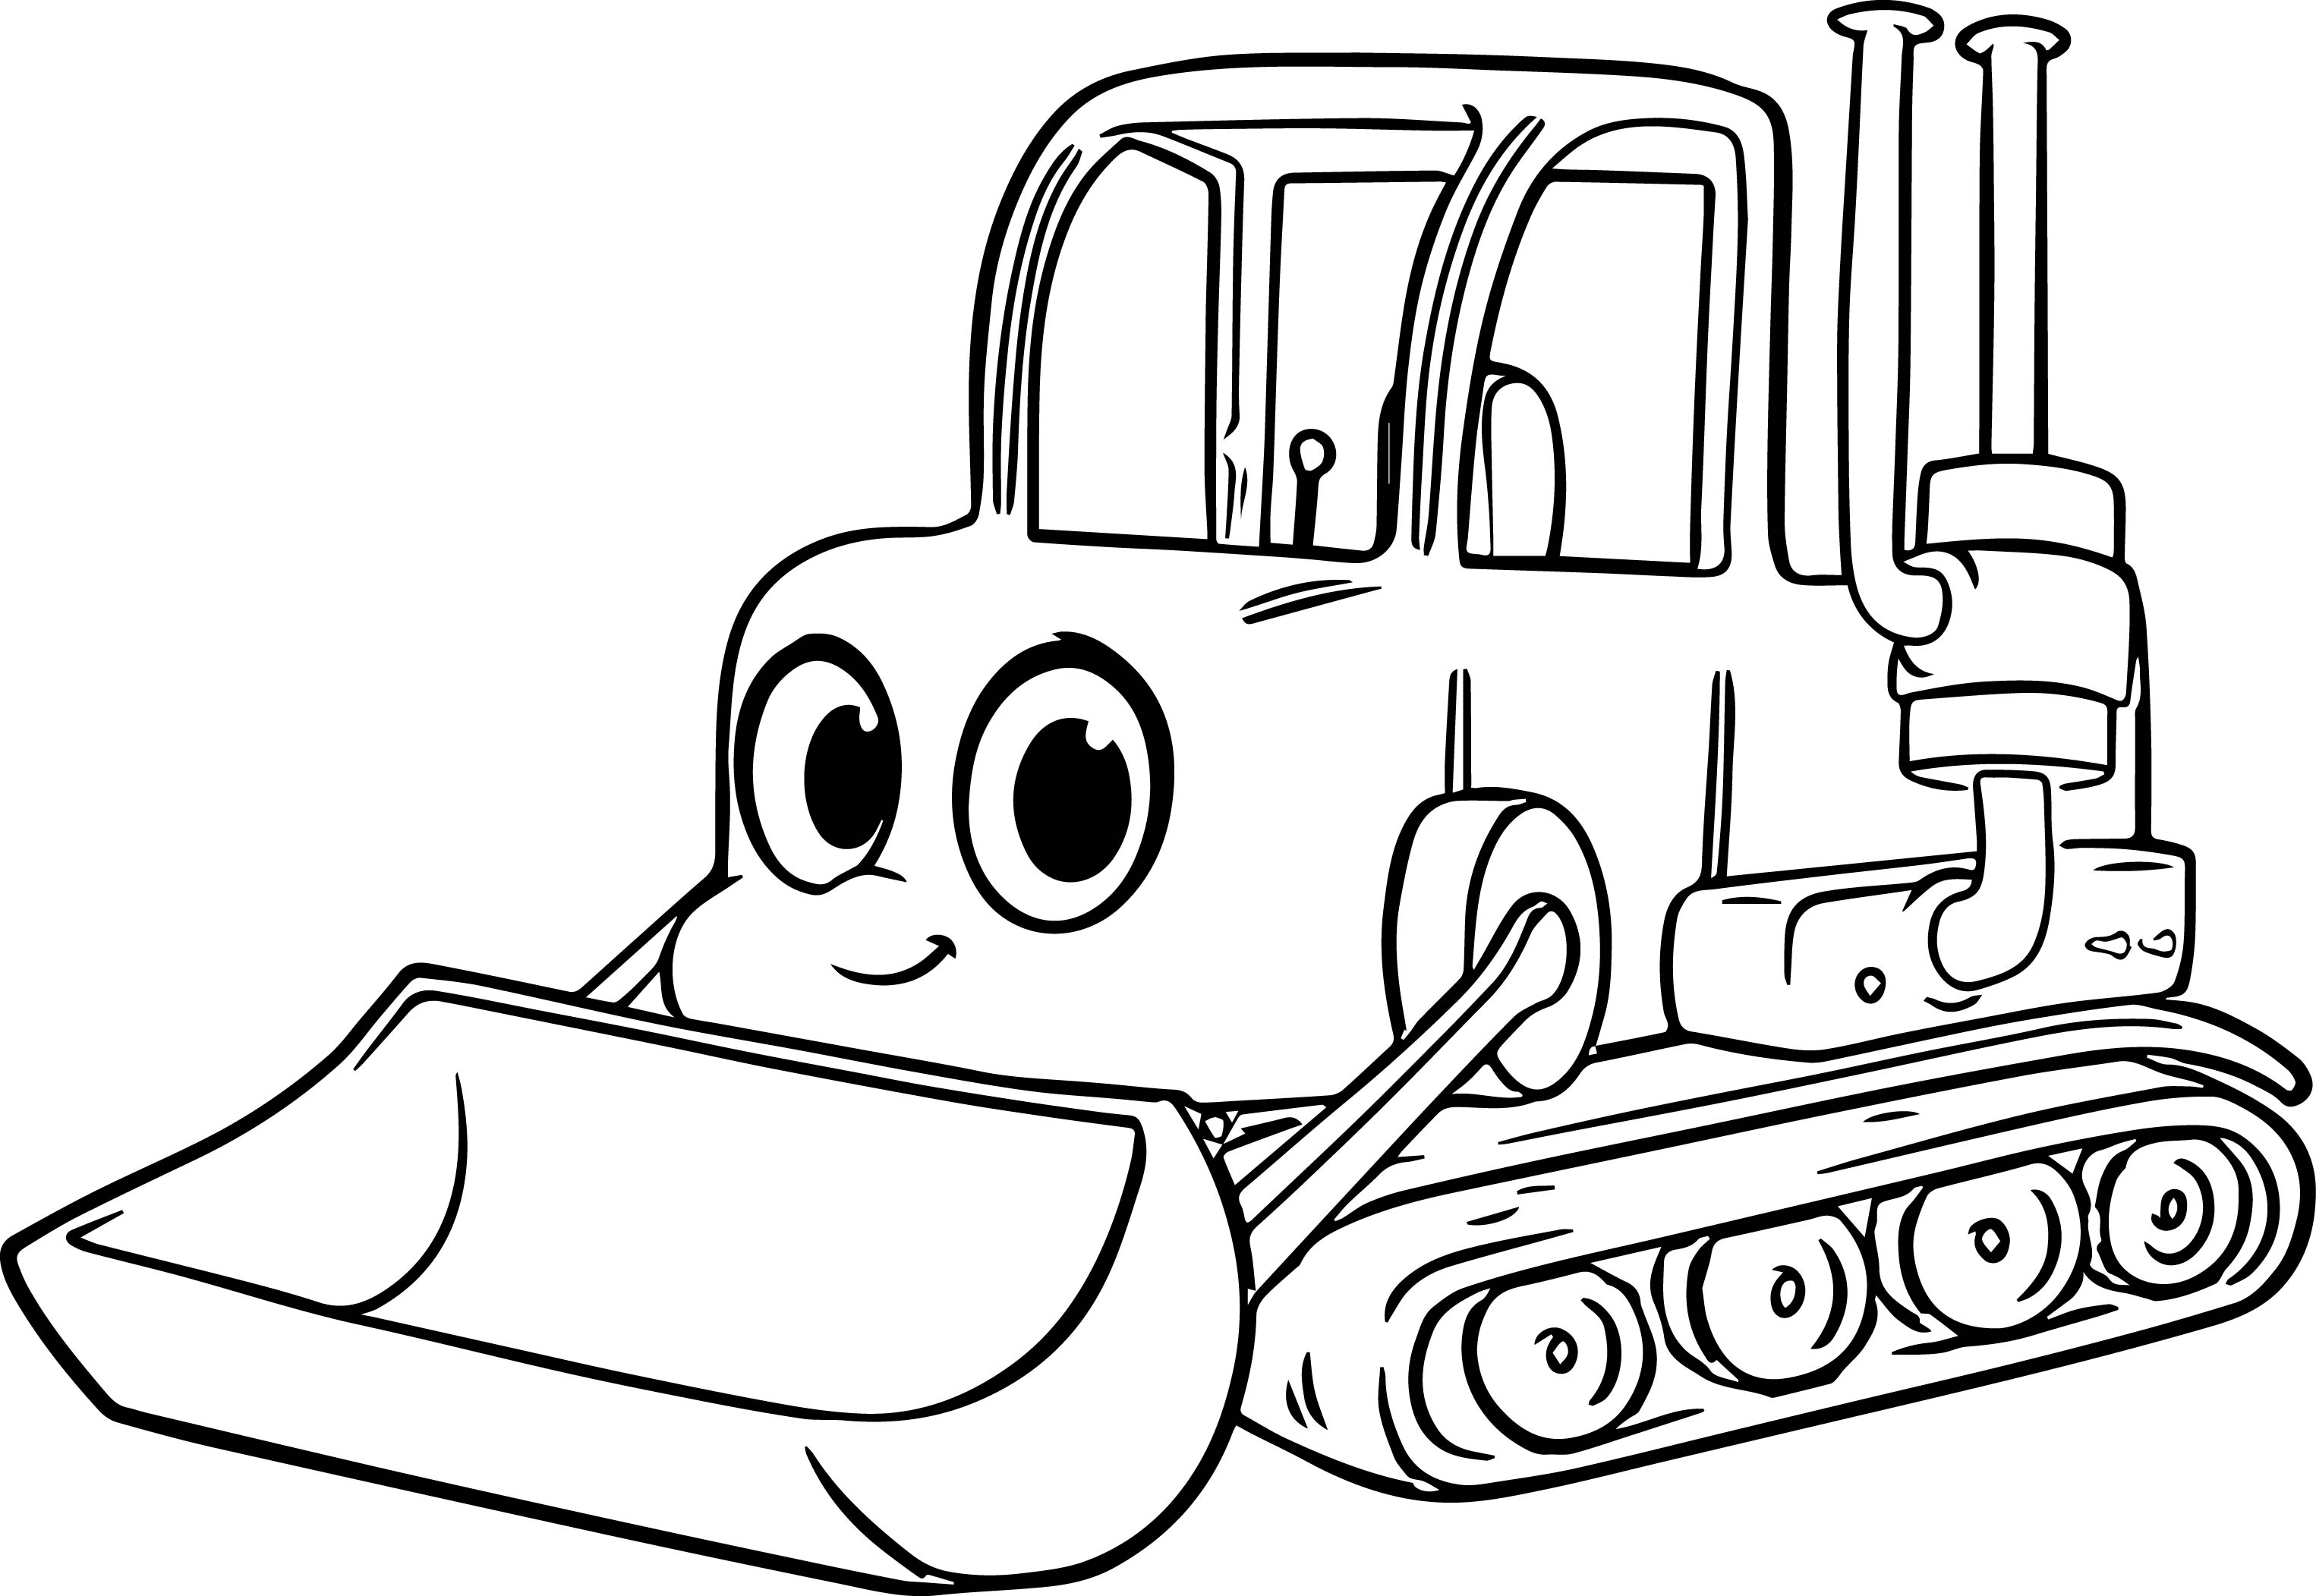 3051x2103 Construction Equipment Coloring Pages